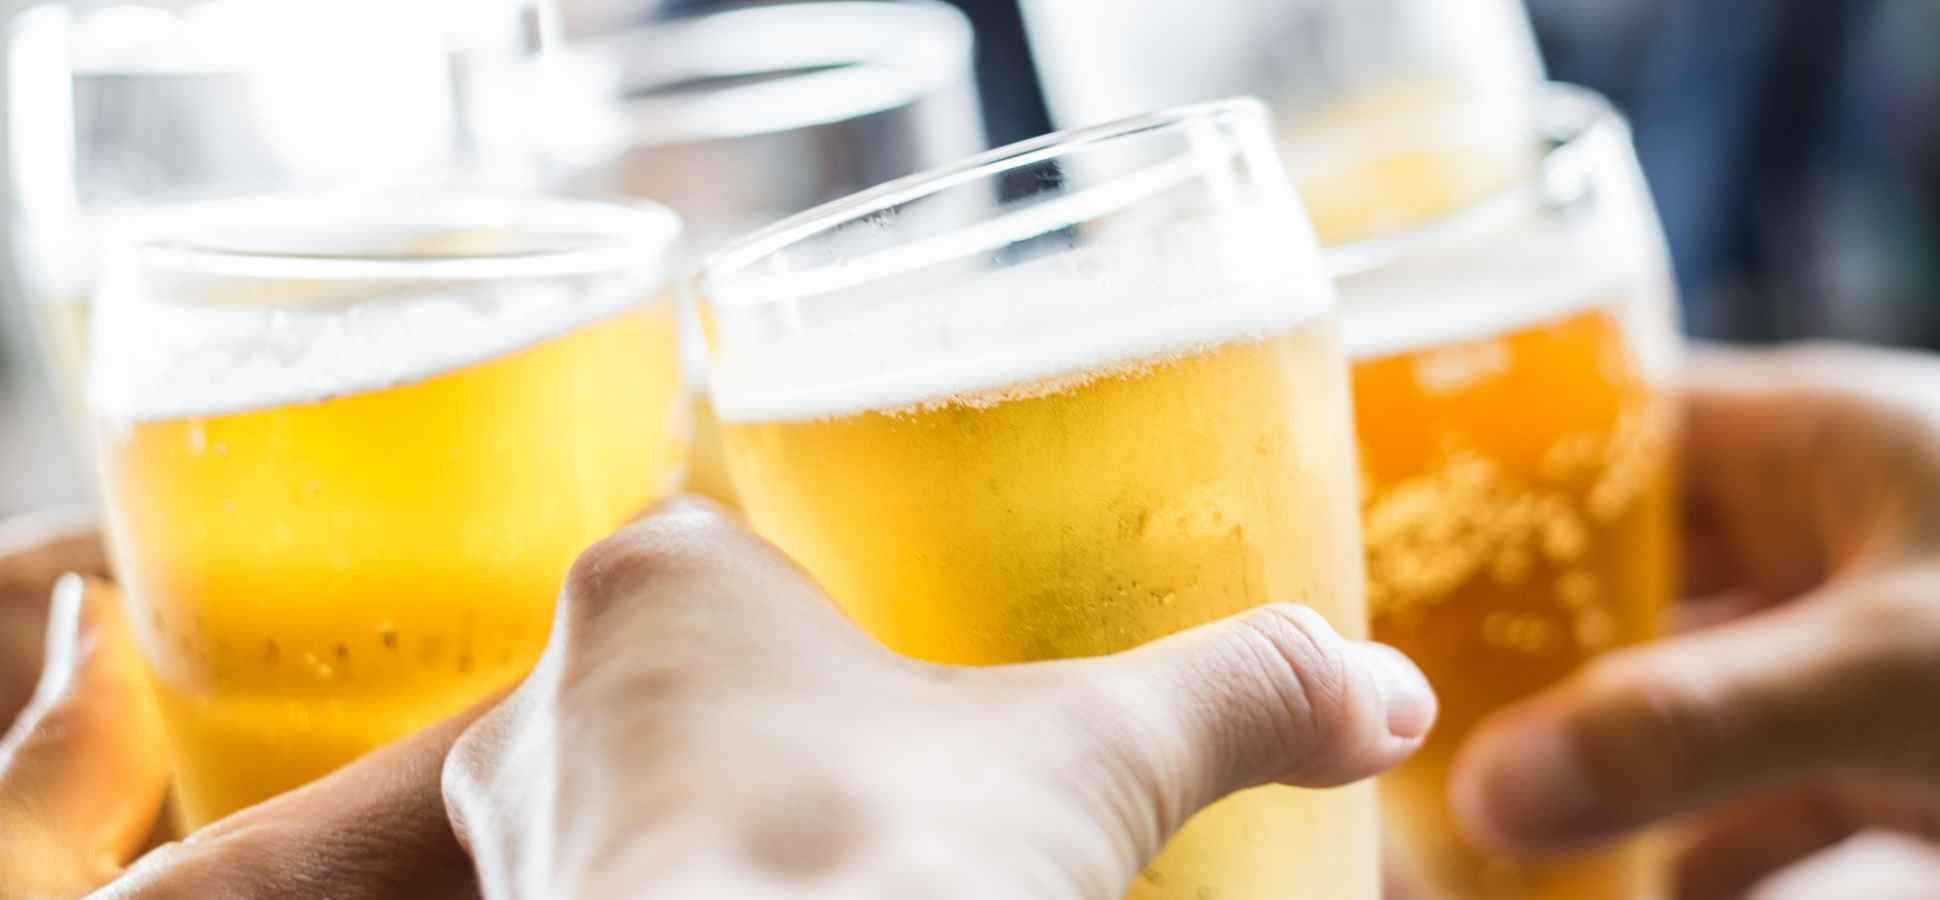 This Study of 2 Million People Says Two Drinks Significantly Lowers Your Risk of Heart Disease